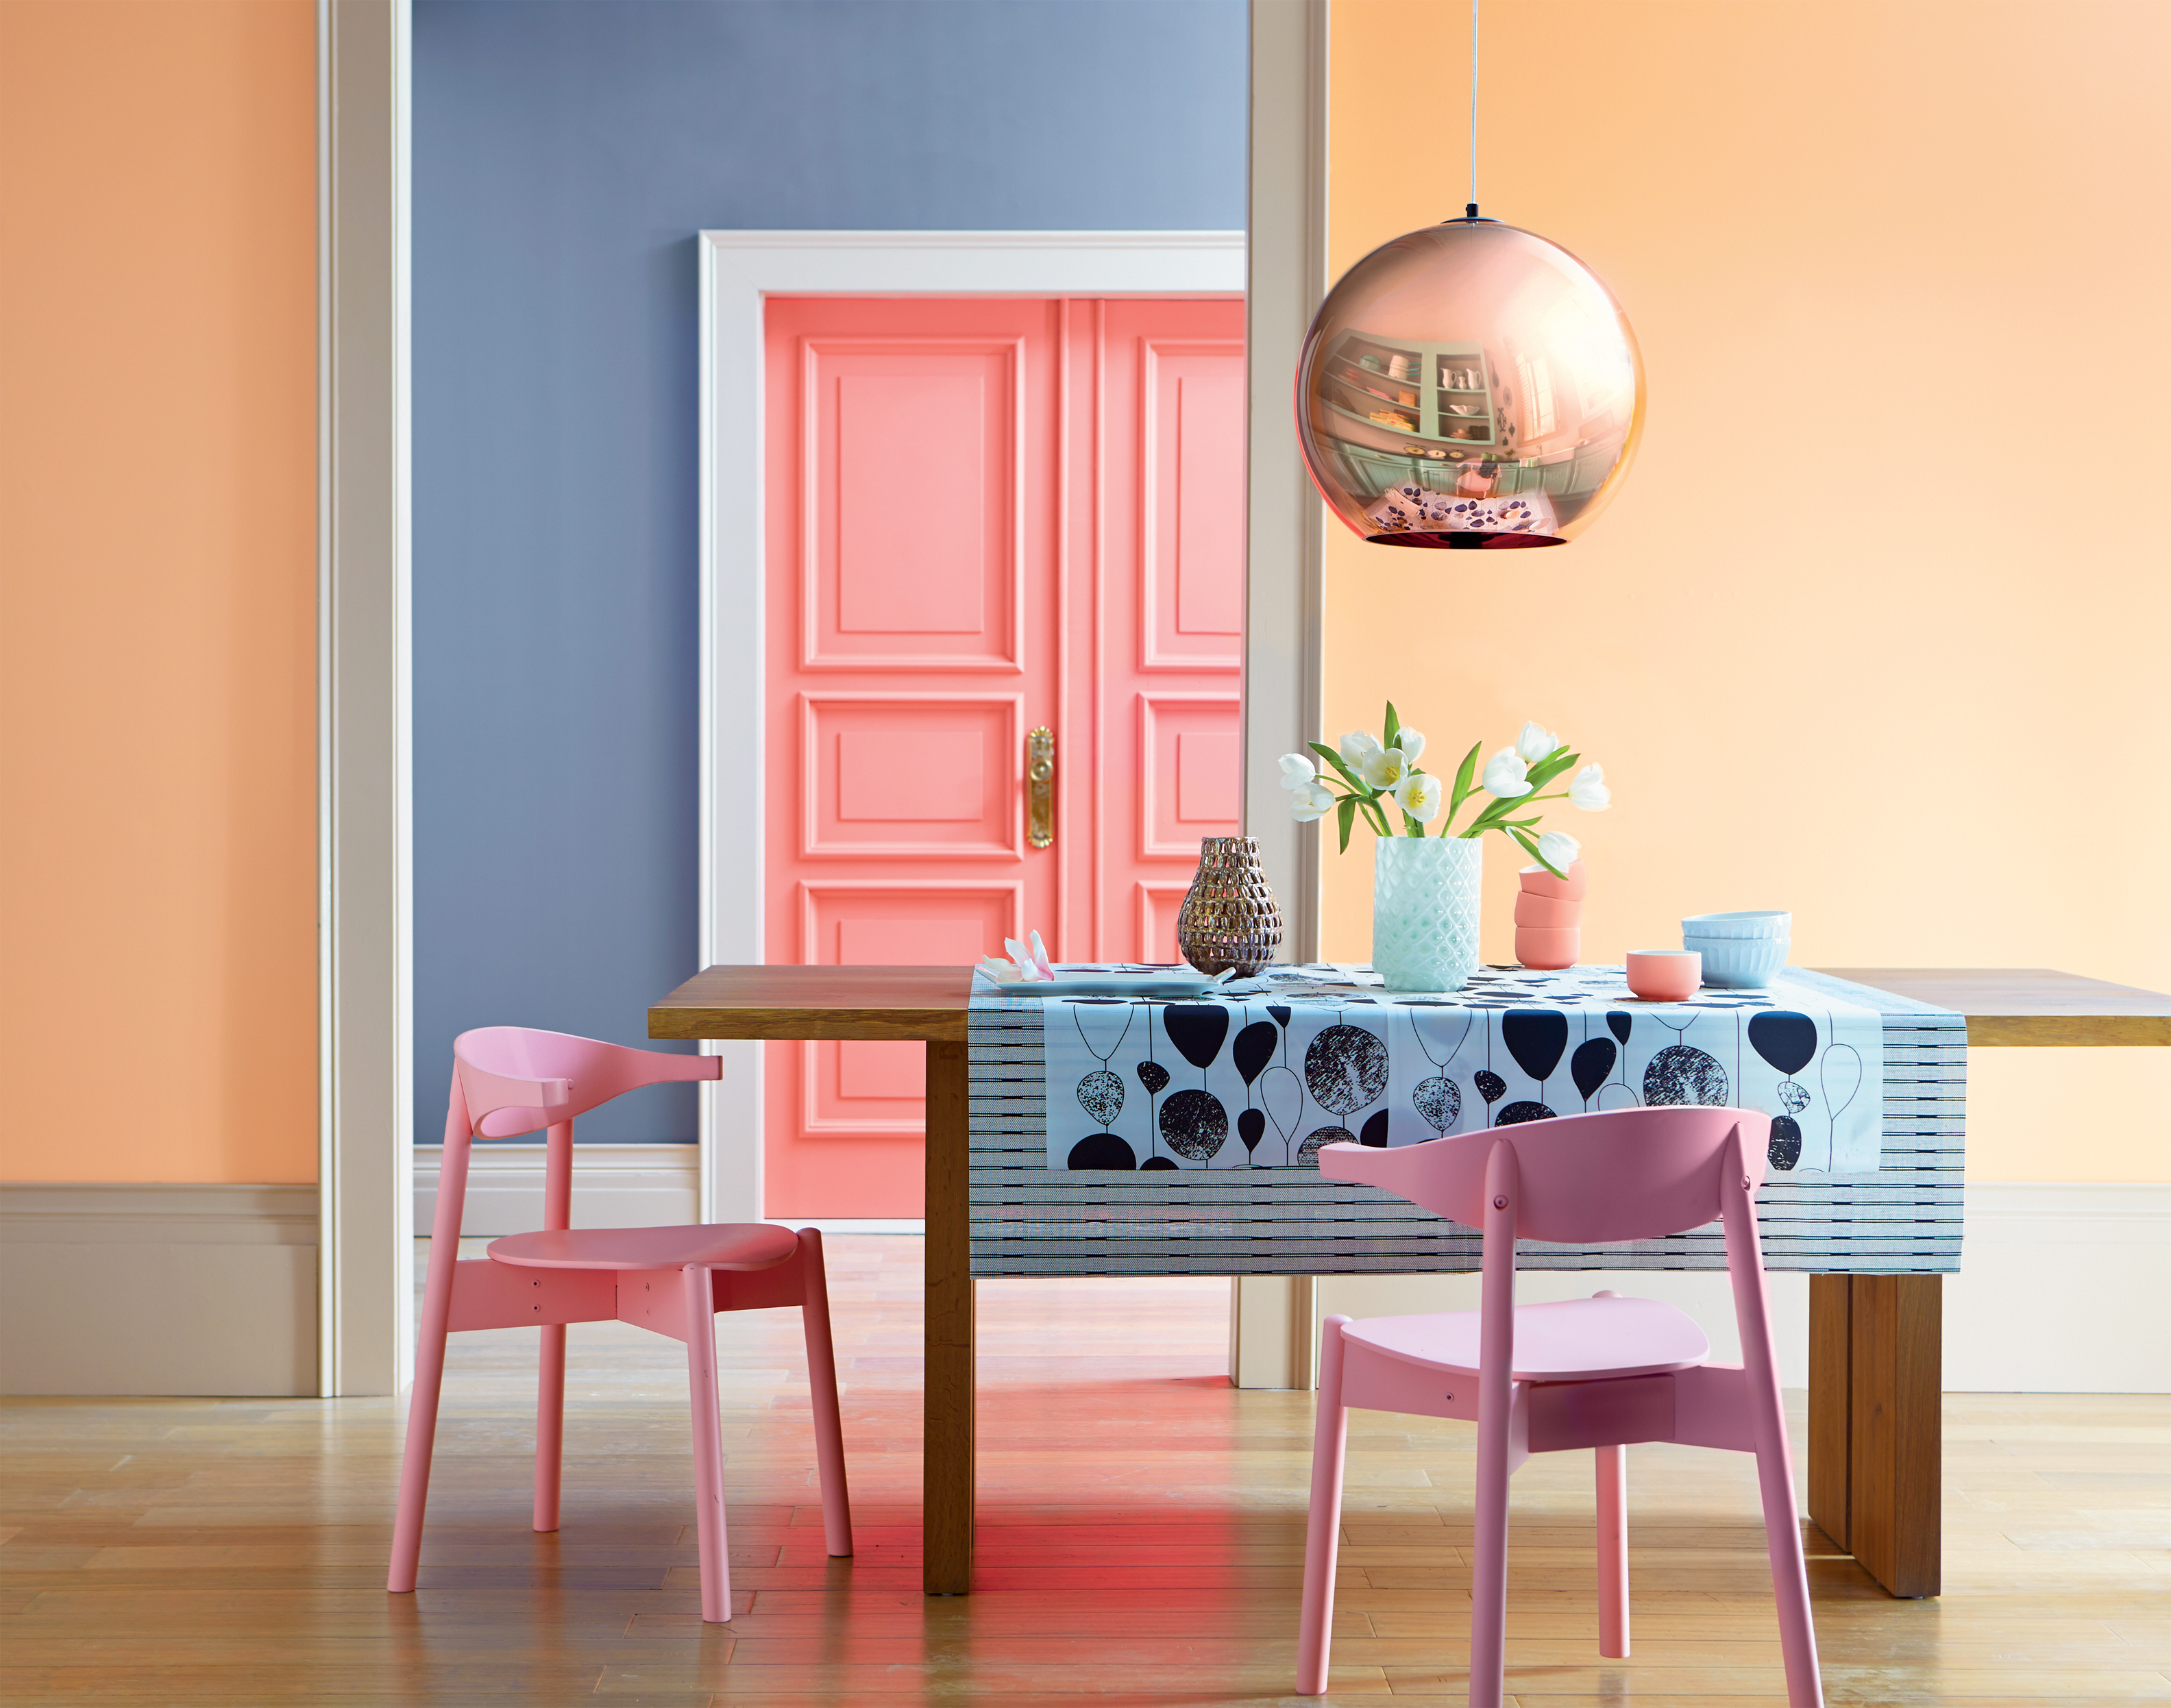 Valspar has a range of delicious ice-cream shades, such as (front walls) Clementine Cream, (back walls) Blueberry Mash (both Valspar Premium Blend v700 Walls & Ceilings, £28 for 2.5L) and (door) Peach Syrup (Valspar Premium Blend v700 Wood & Metal, £32 for 2.5L). Available from B&Q stores nationwide (Valspar/PA)